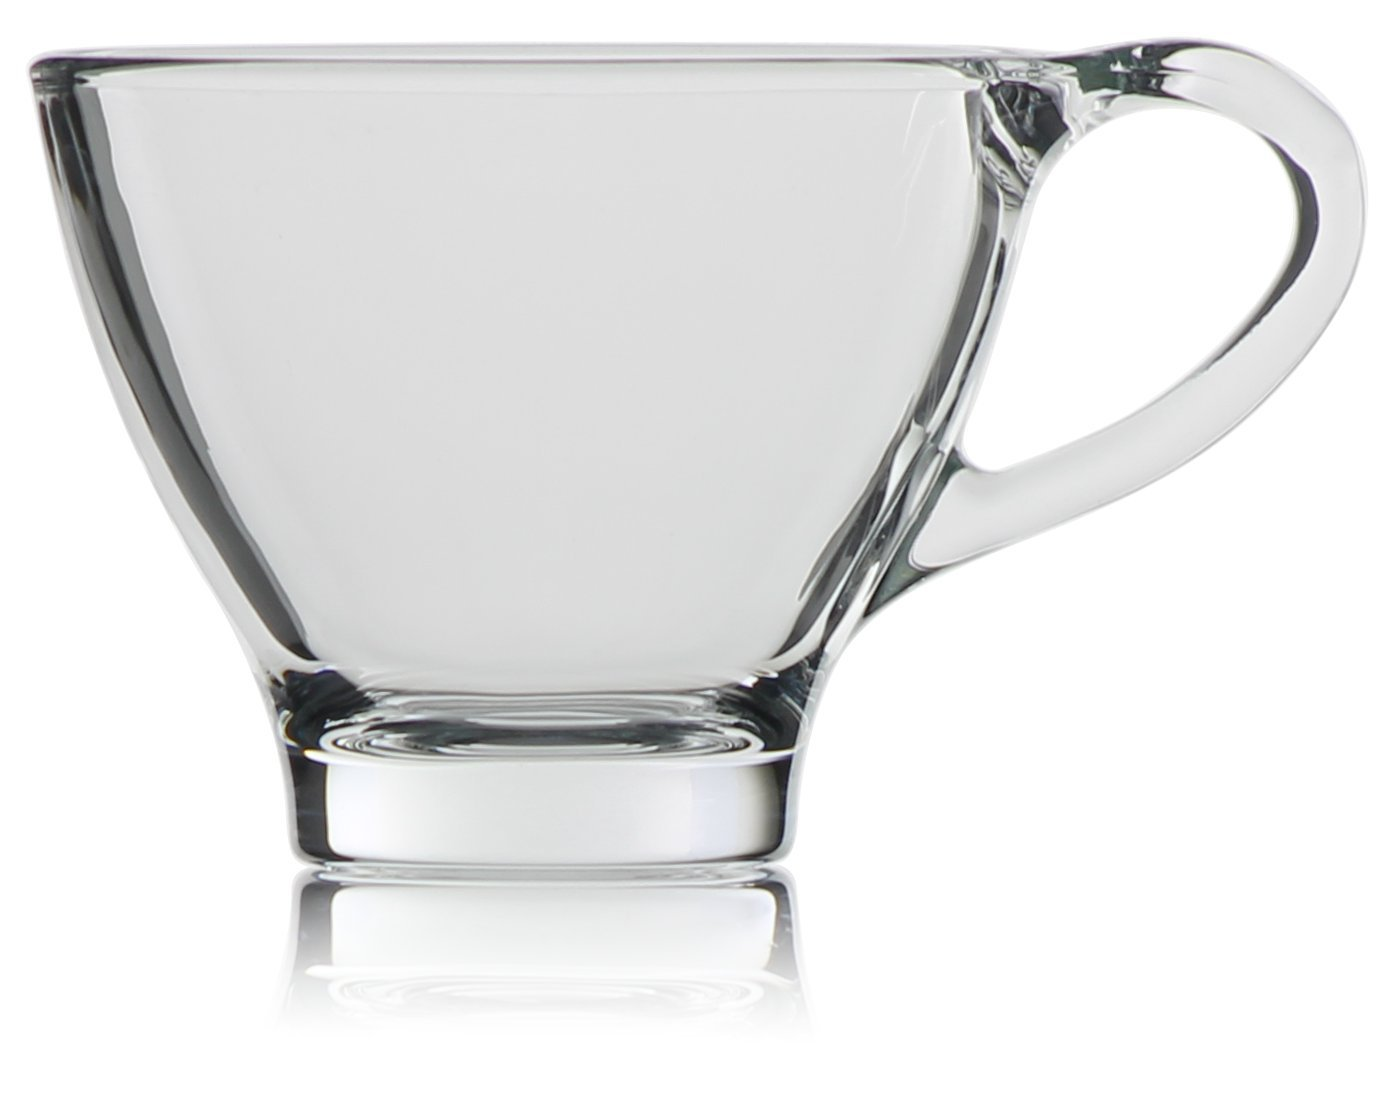 Hikari 6oz Espresso Shot Glasses Cups w/Handles; Keeps Beverages Hot. Perfect for Nespresso, Coffee, Cappuccino or Any Other Short Drinks, Set of 6 (Gift Boxed)